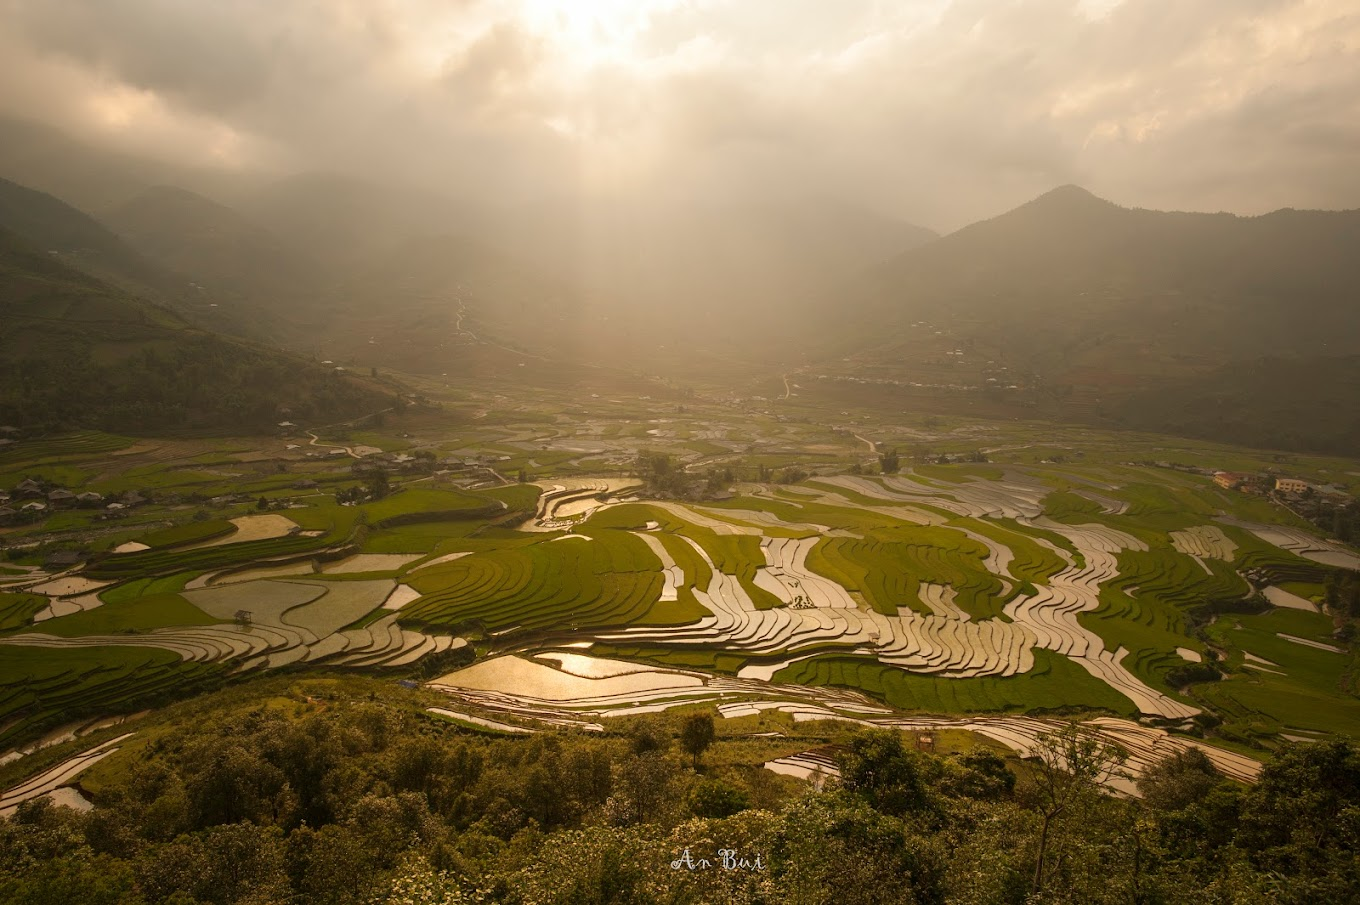 Sunset photography of rice terrace in Tu Le